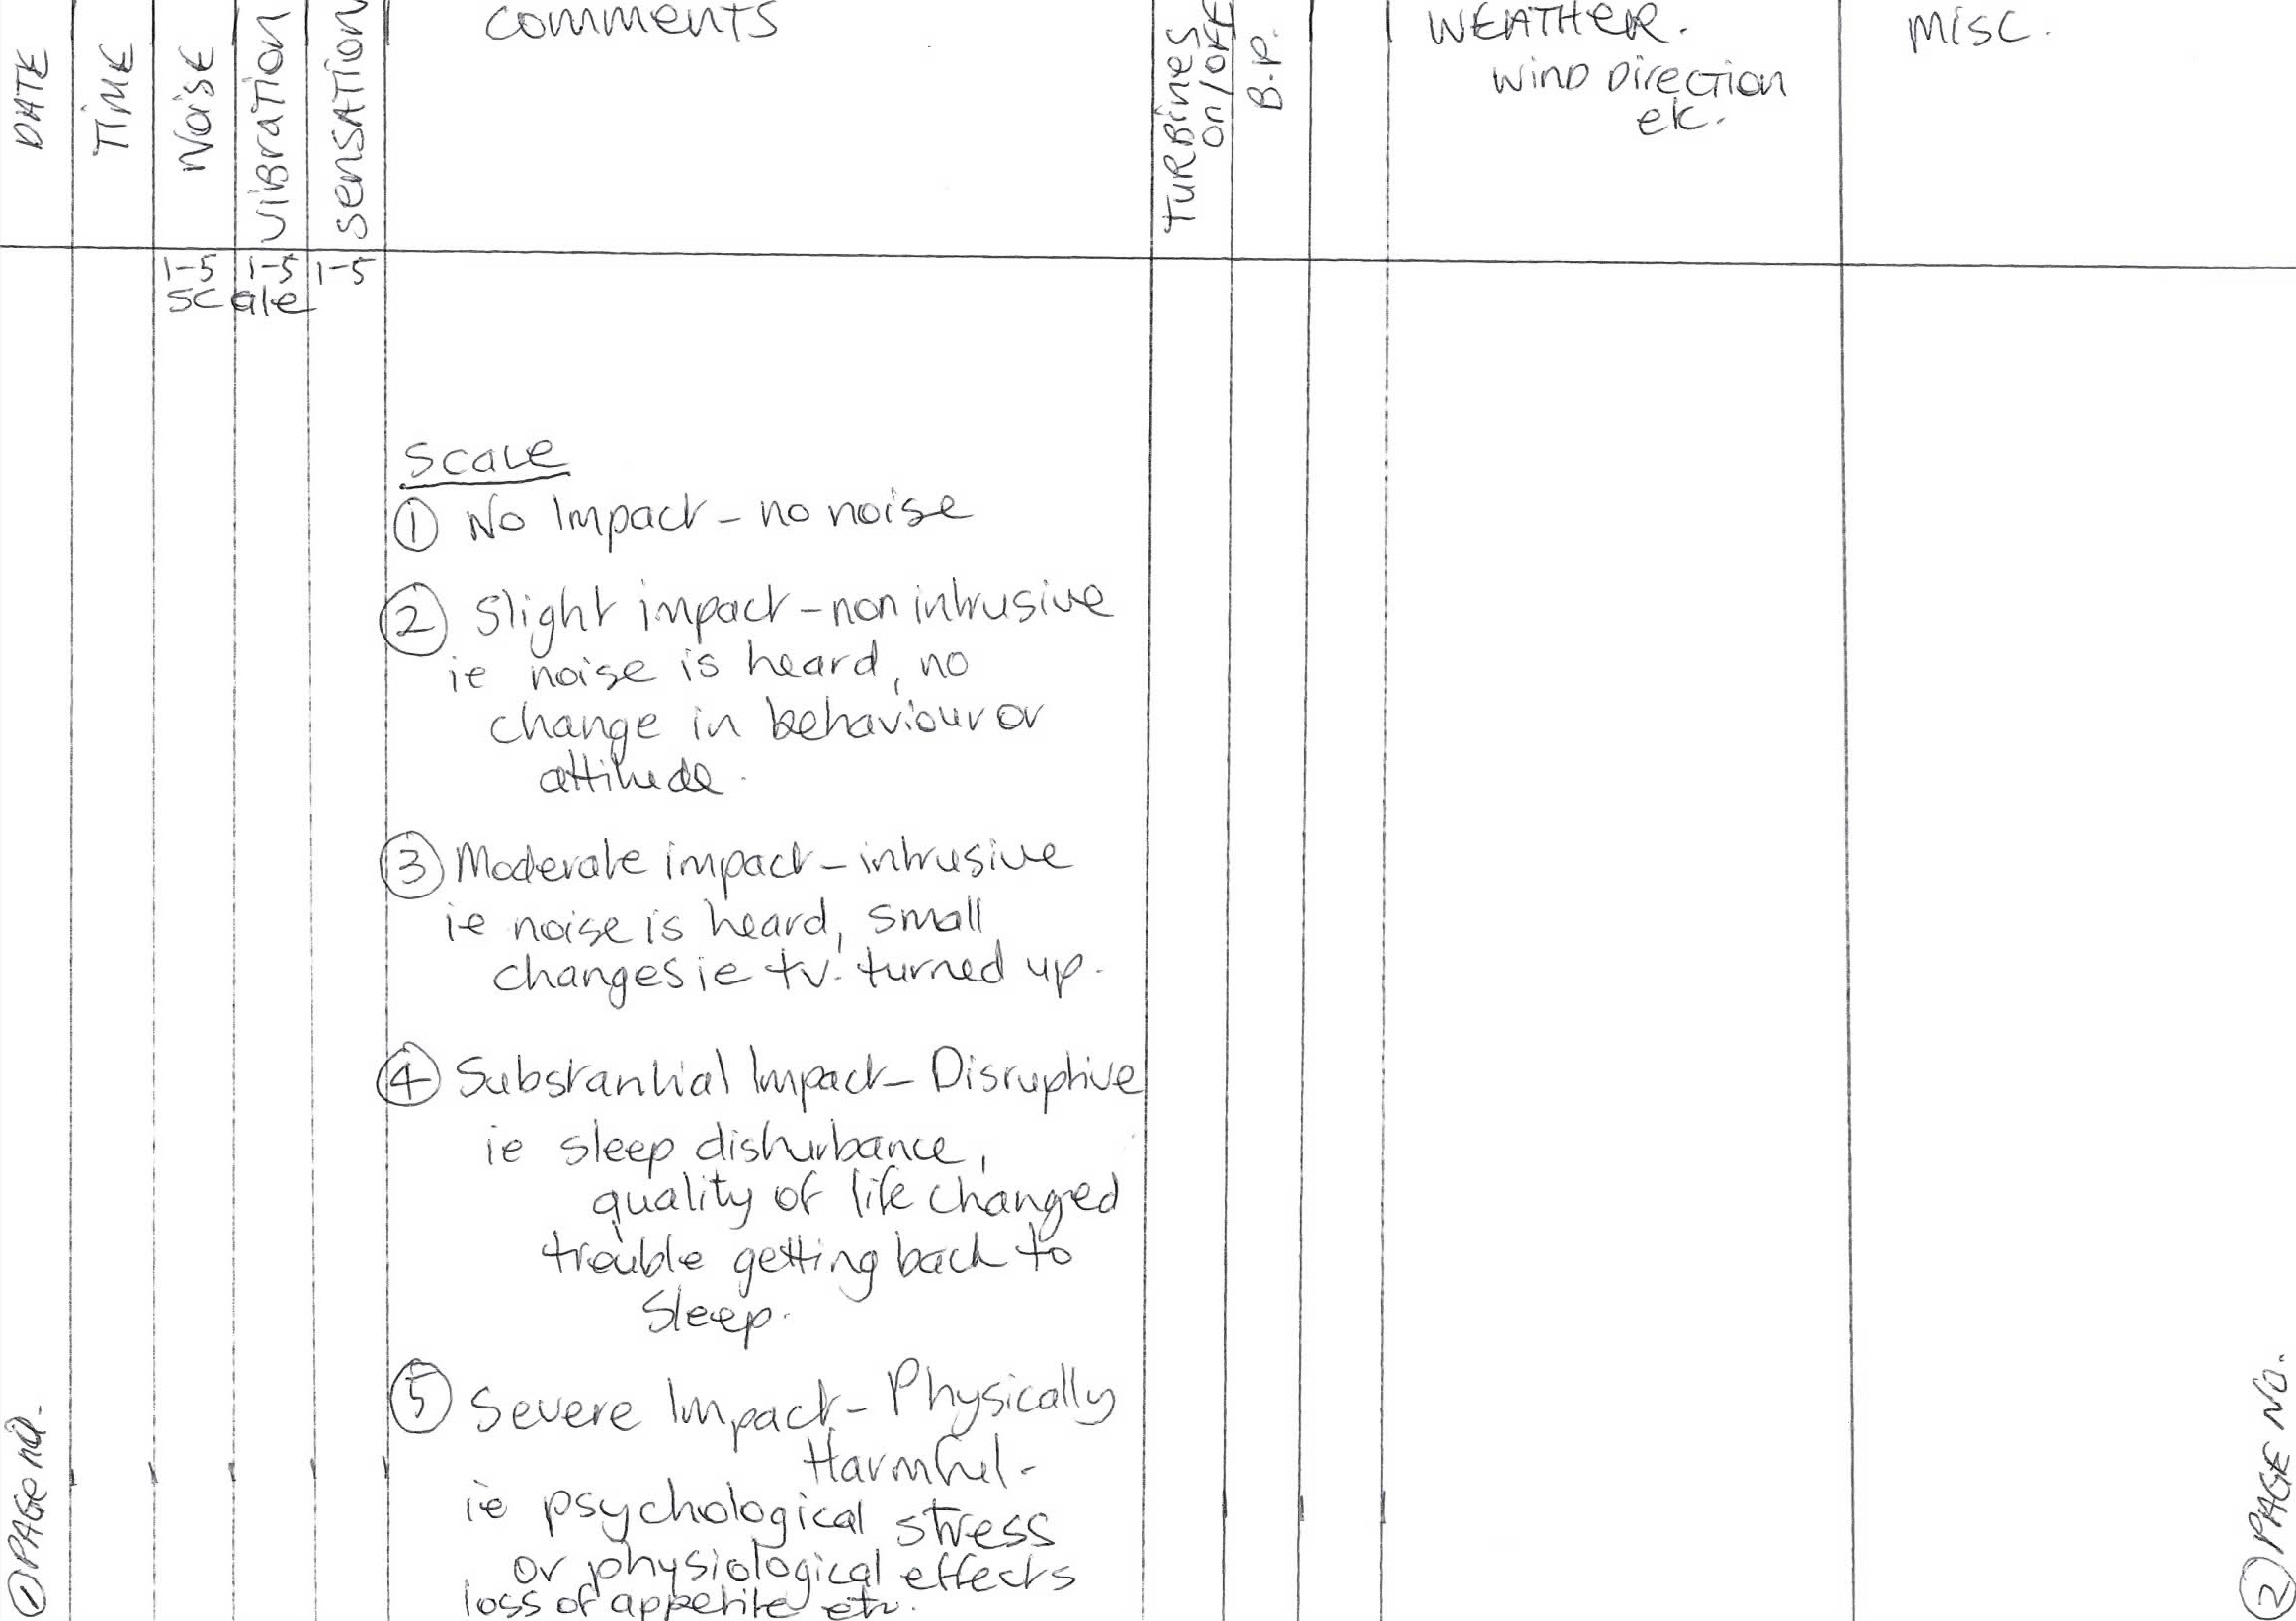 download the handwritten chart template supplied by the residents